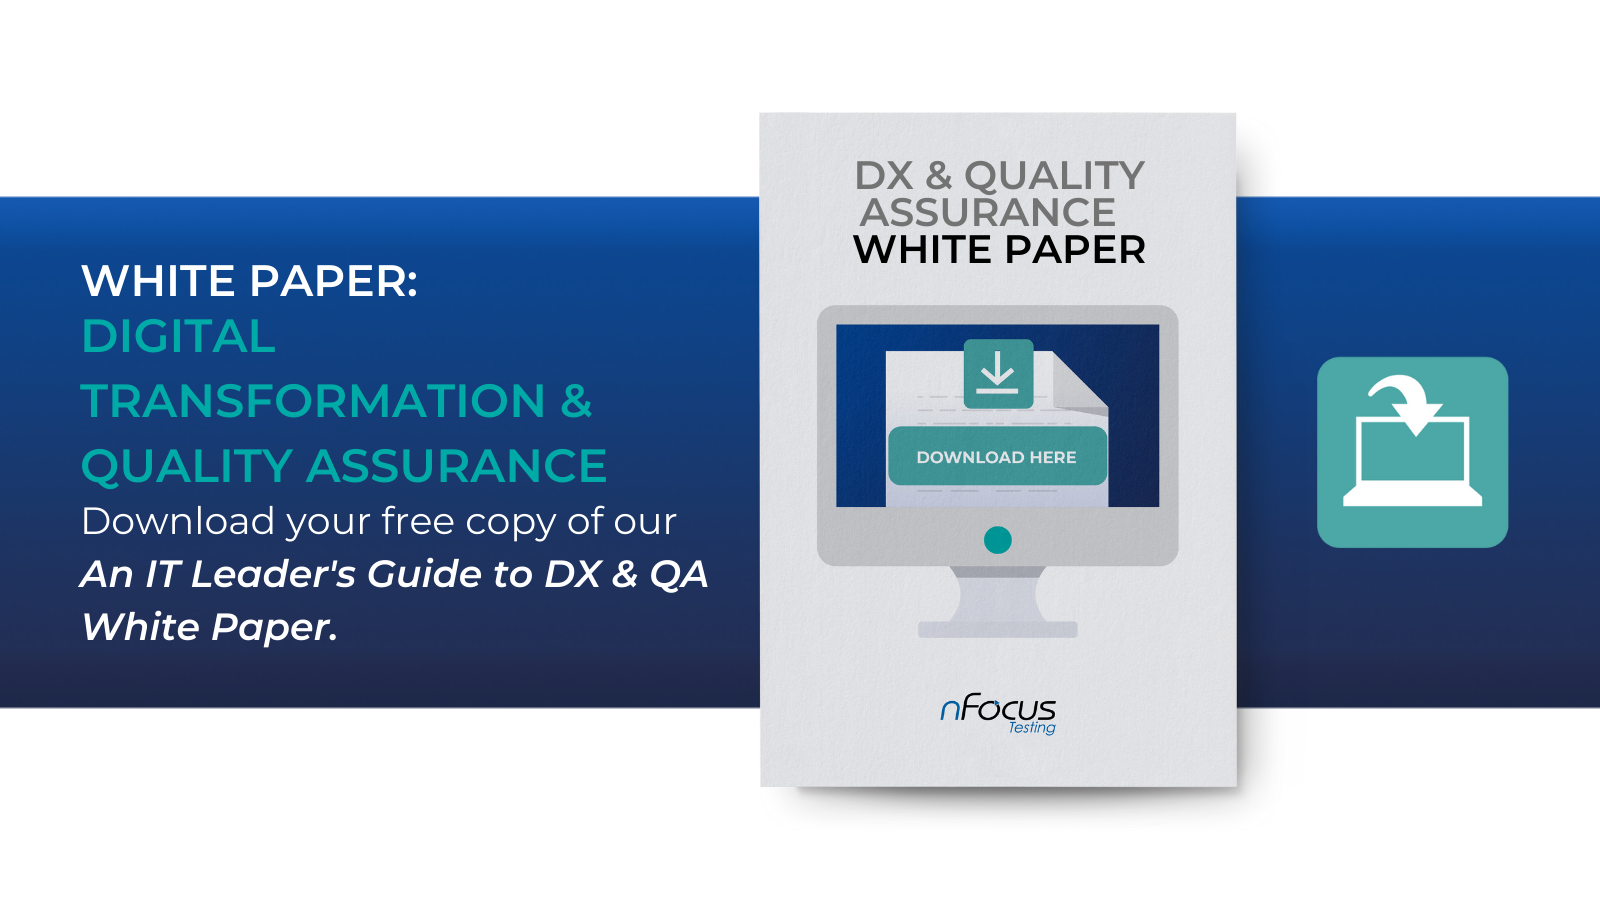 An IT Leader's Guide to Digital Transformation & Quality Assurance White Paper